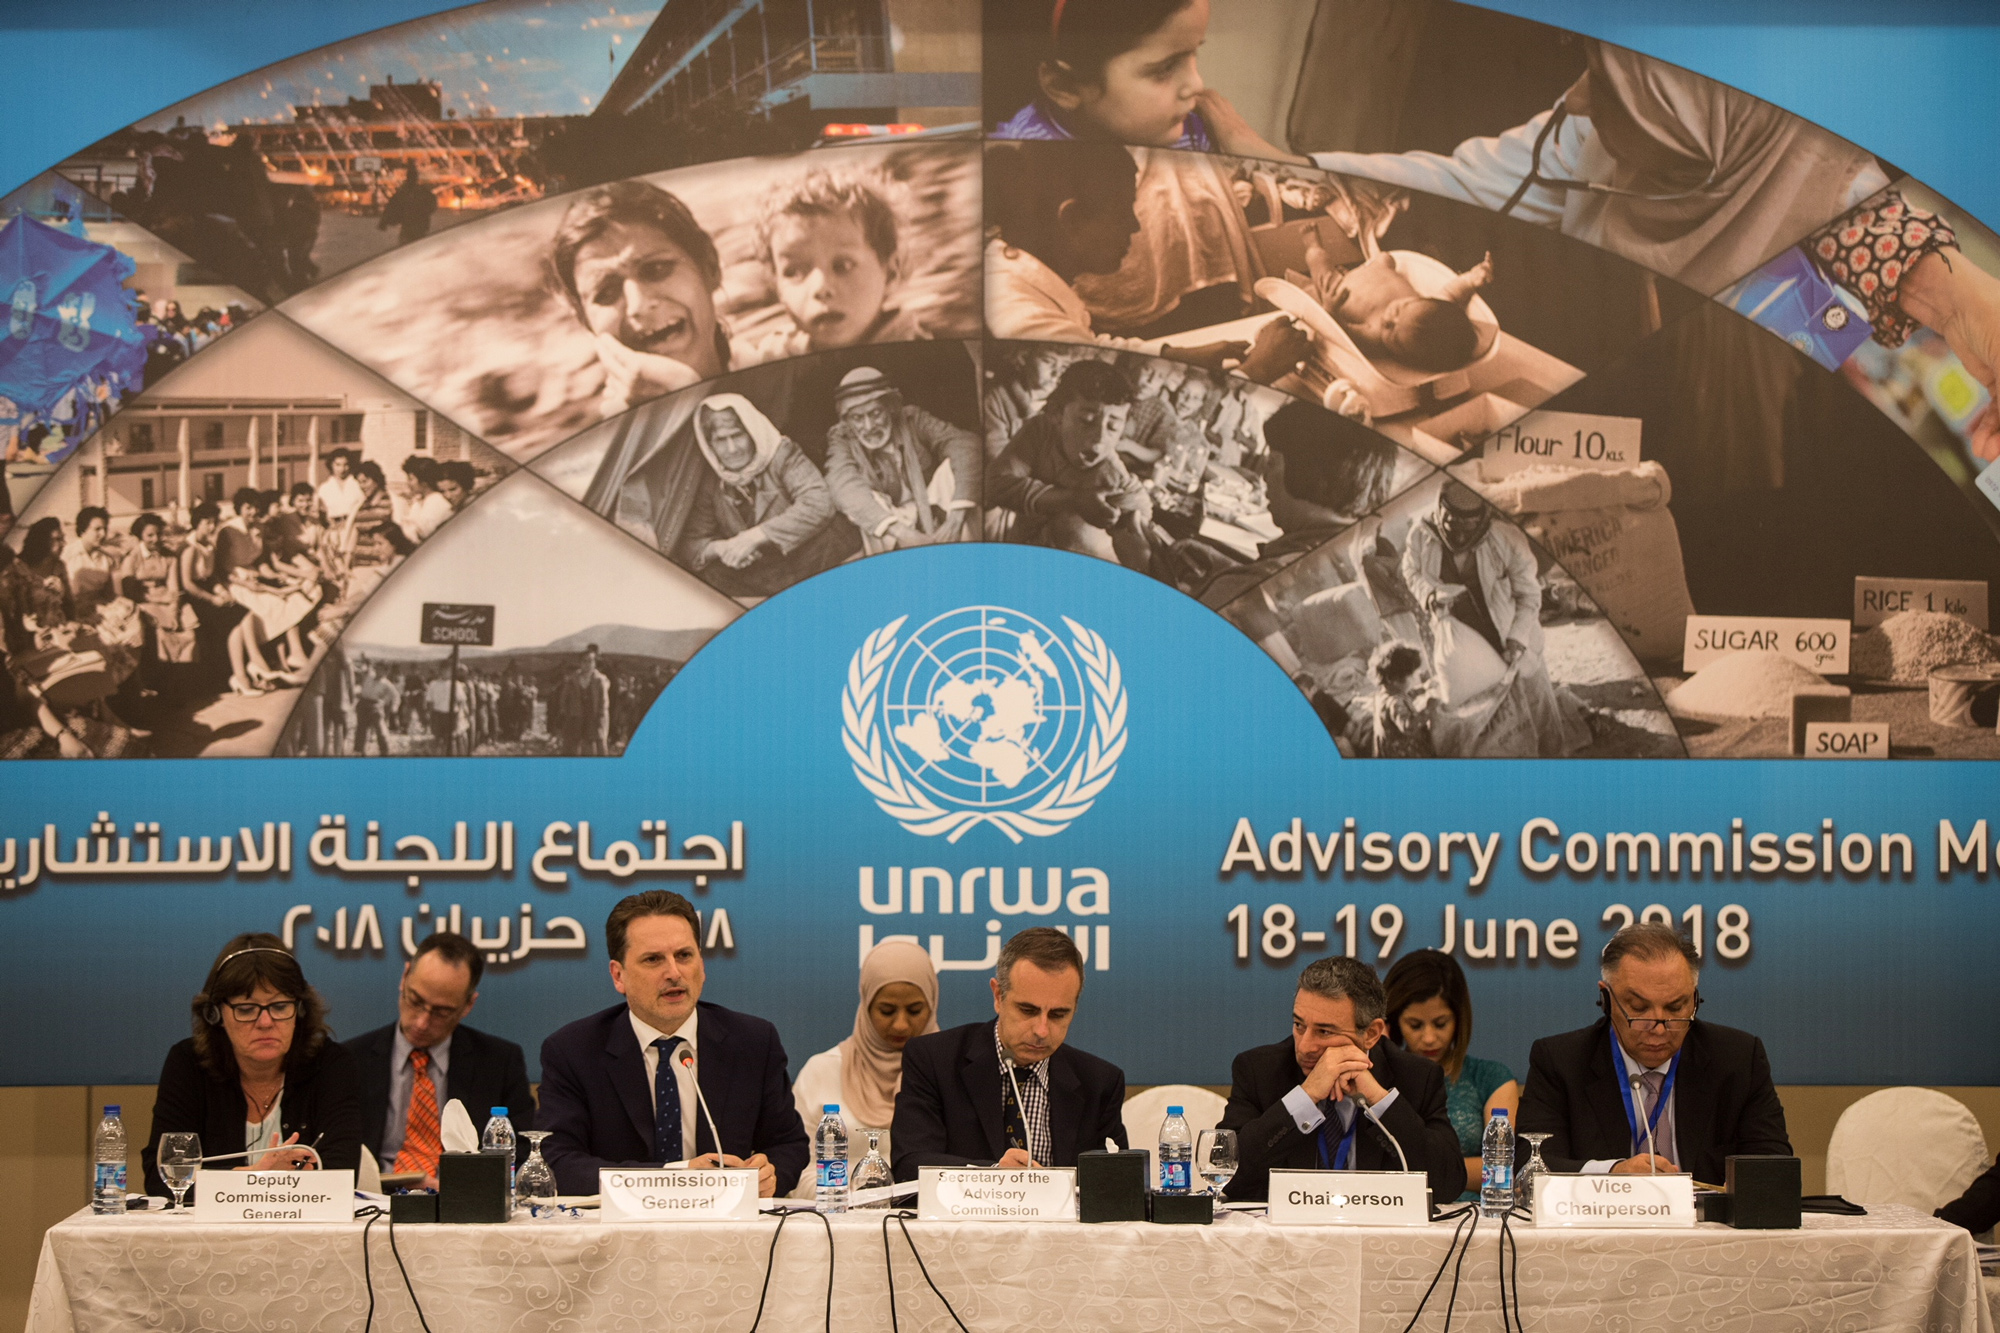 TUNRWA Commissioner-General Pierre Krähenbühl (speaking) addresses representatives of host and donor countries at the opening session of UNRWA Advisory Commission held in Jordan on 18 June 2018. © 2018 UNRWA Photo by Marwan Baghdadi